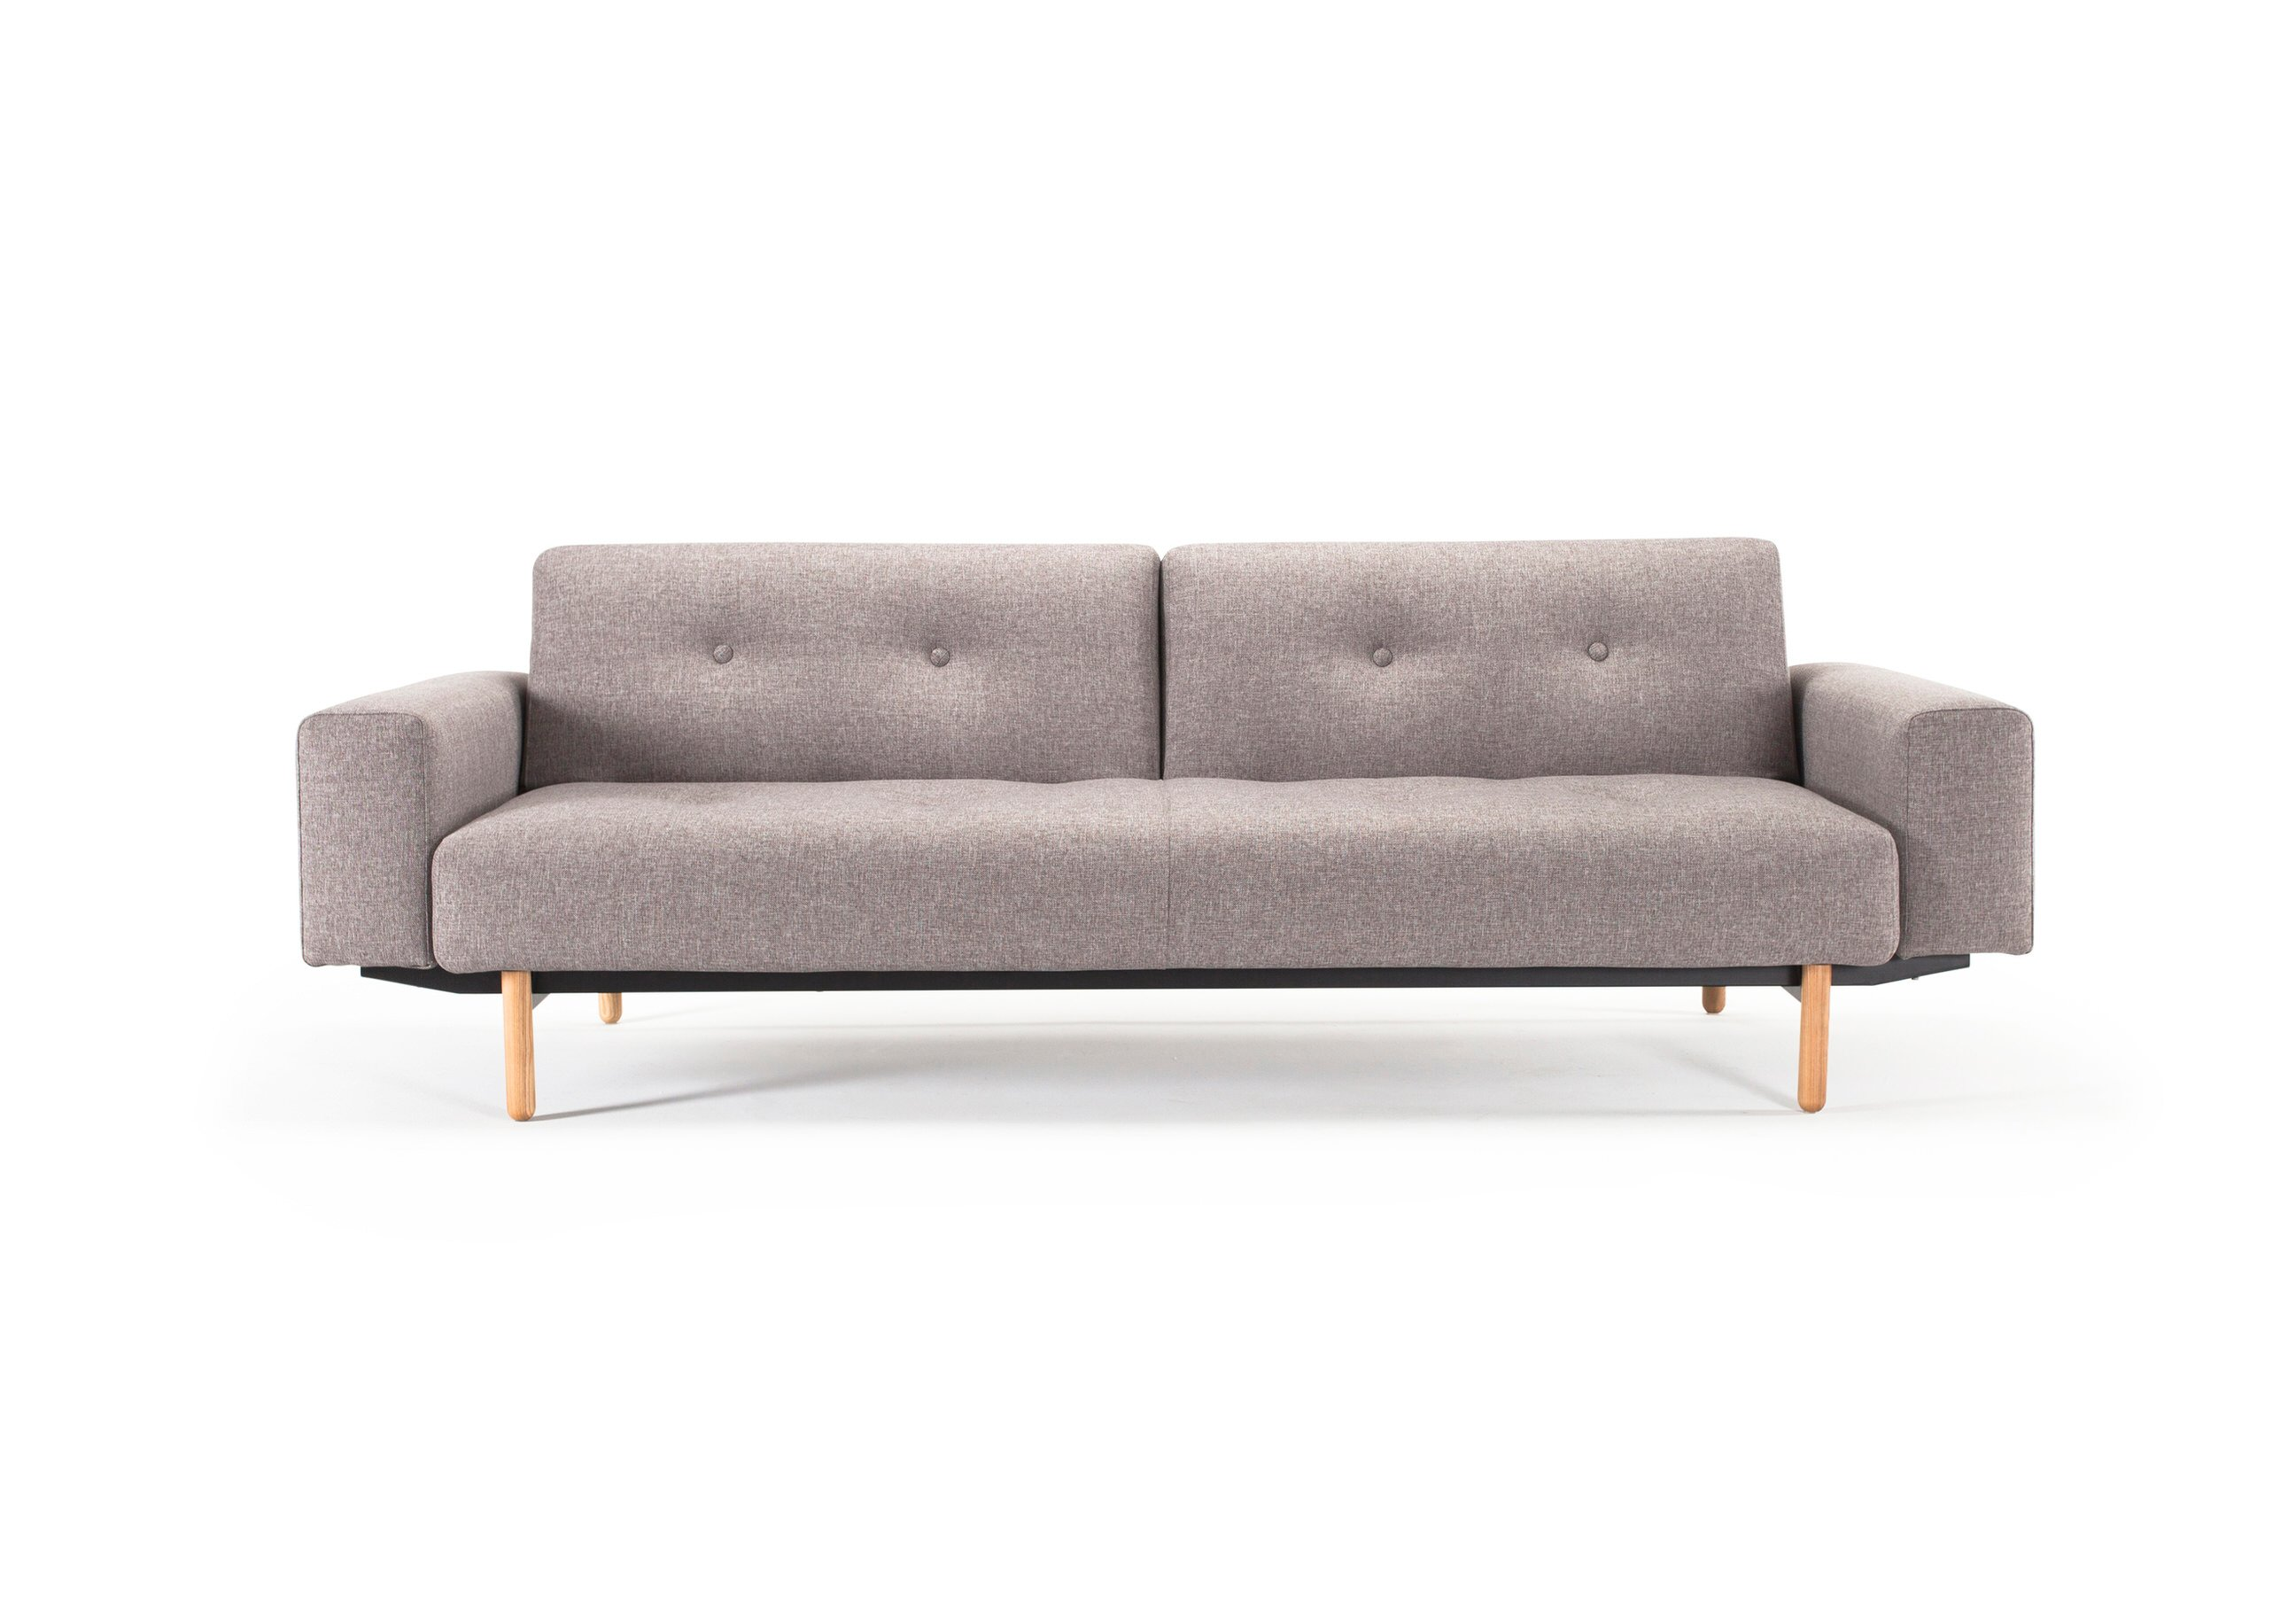 Buri Sofa Bed w Arms Mixed Dance Gray by Innovation